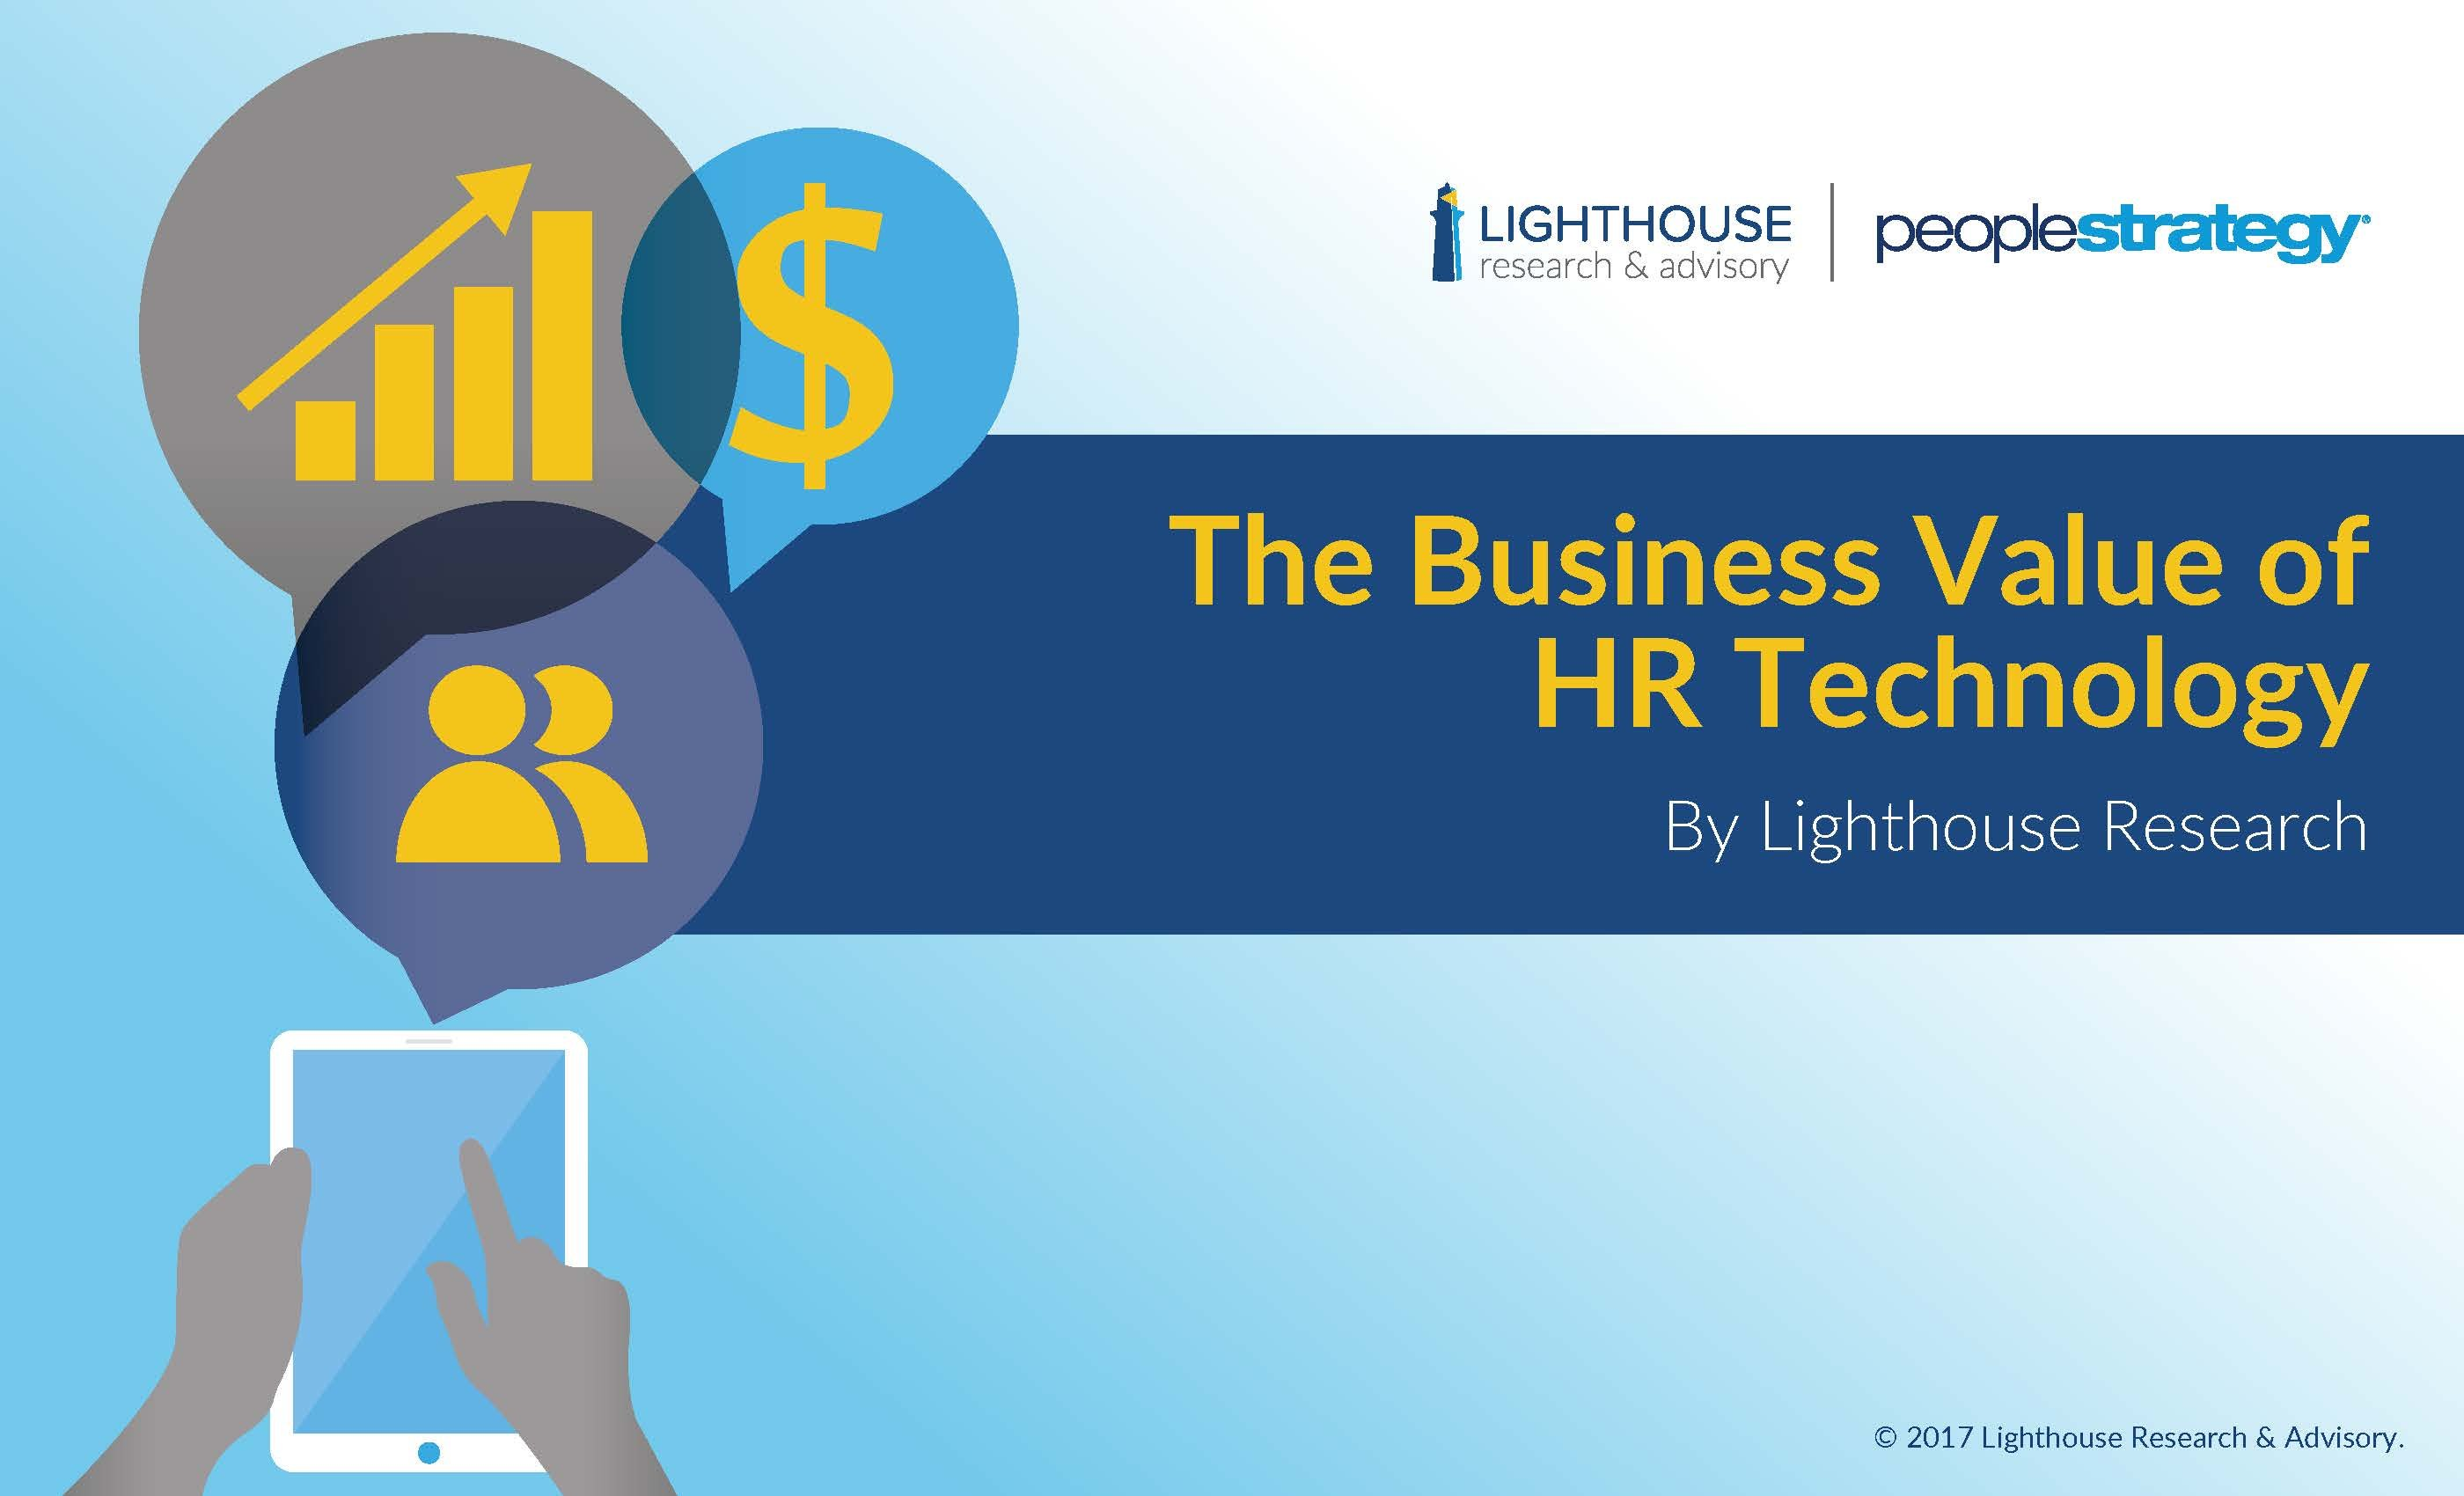 The Business Value of HR Technology Image.jpg